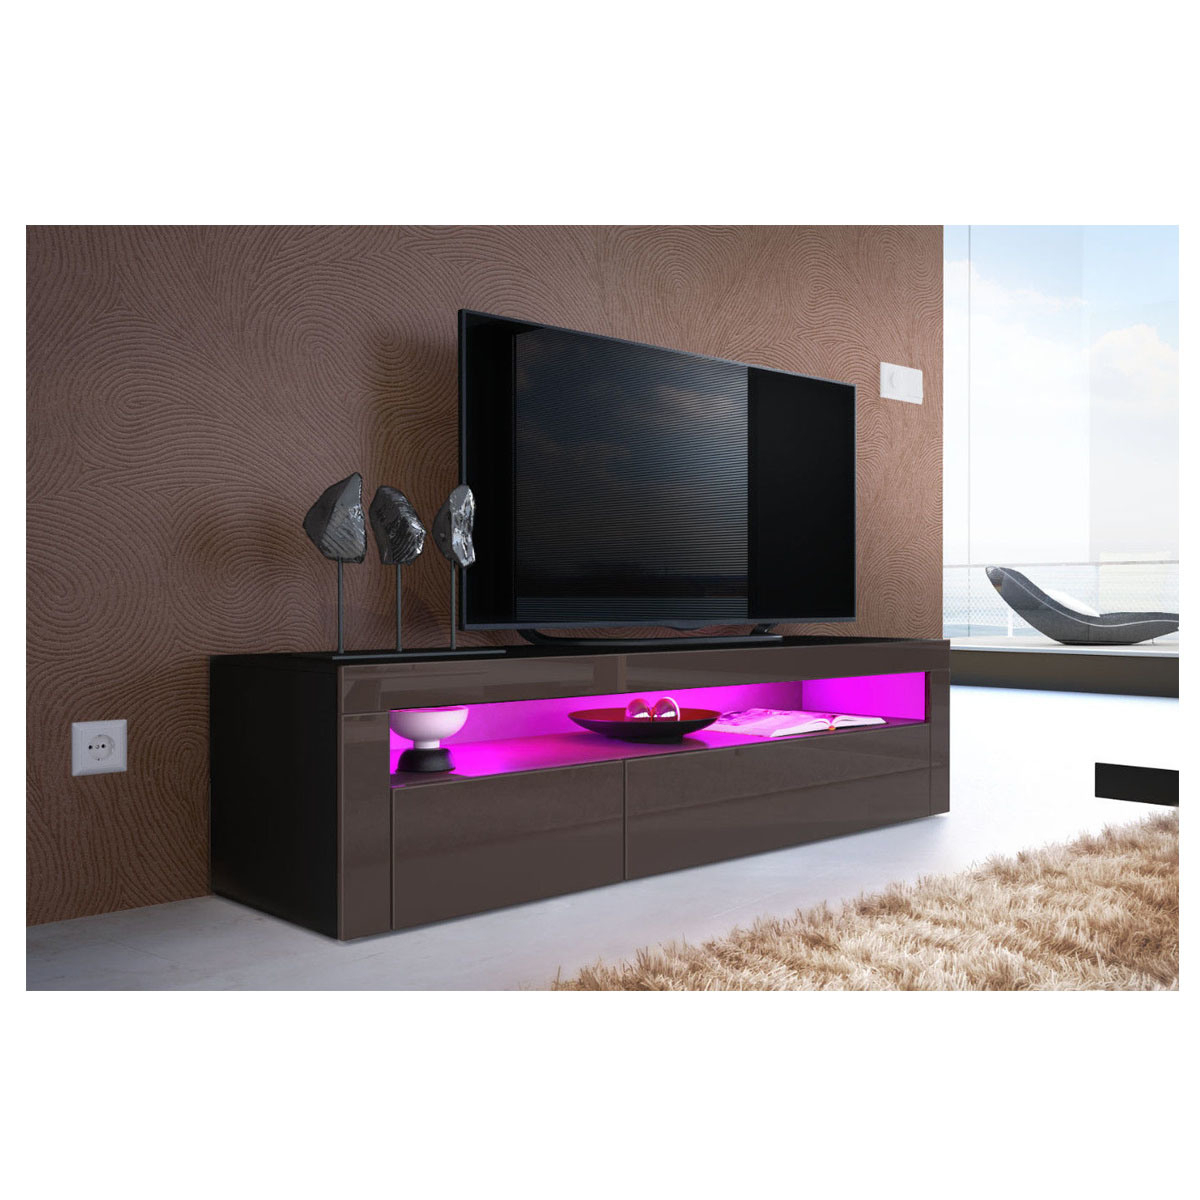 China High Gloss Uv Black Led Light Sideboard Tv Unit For 57'' Led Tv Stands Cabinet (View 3 of 20)